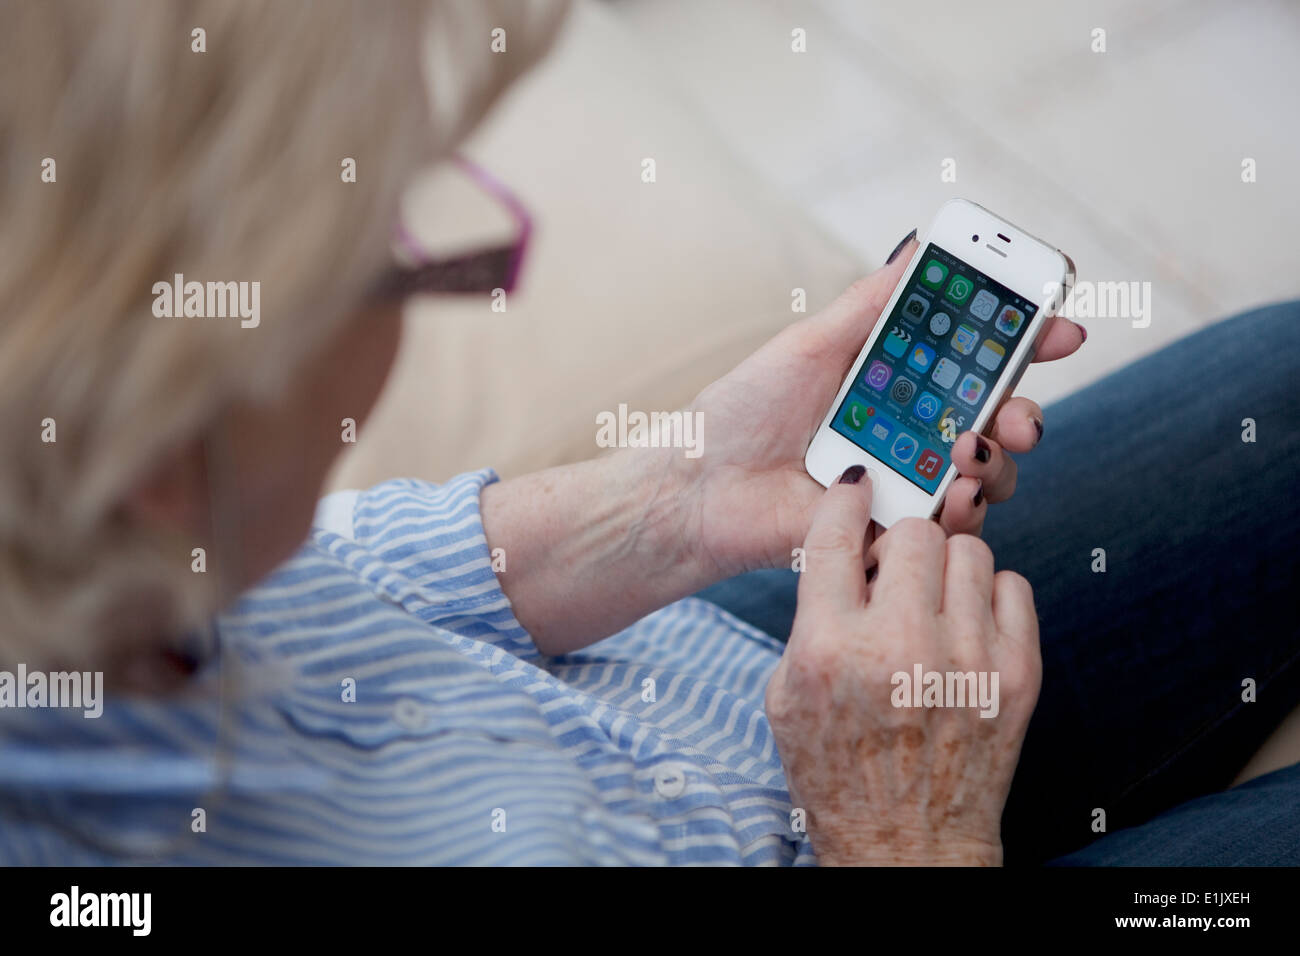 Mature woman embracing technology through use of a mobile smartphone. - Stock Image